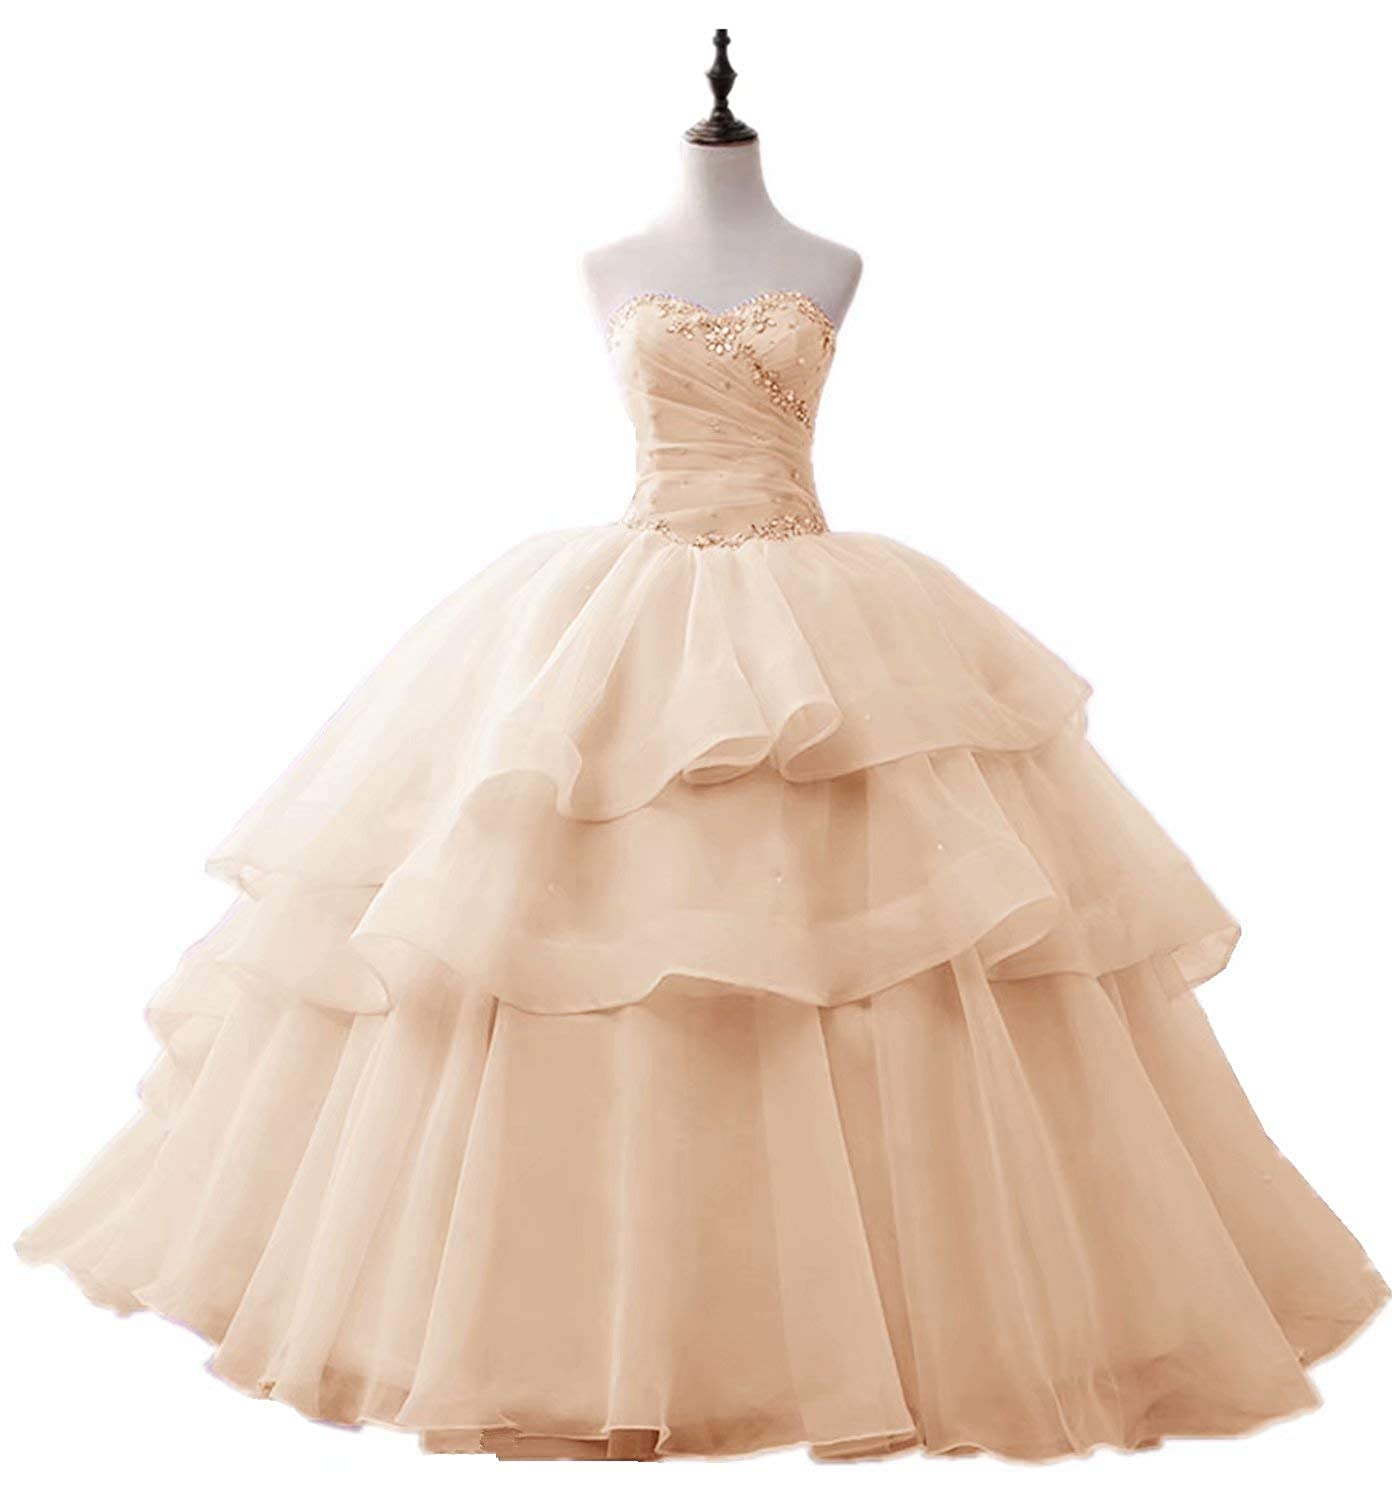 Champagne Fankeshi Womens Elegant Beaded Organza Quinceanera Dress Ball Gown Proncess Party Dress